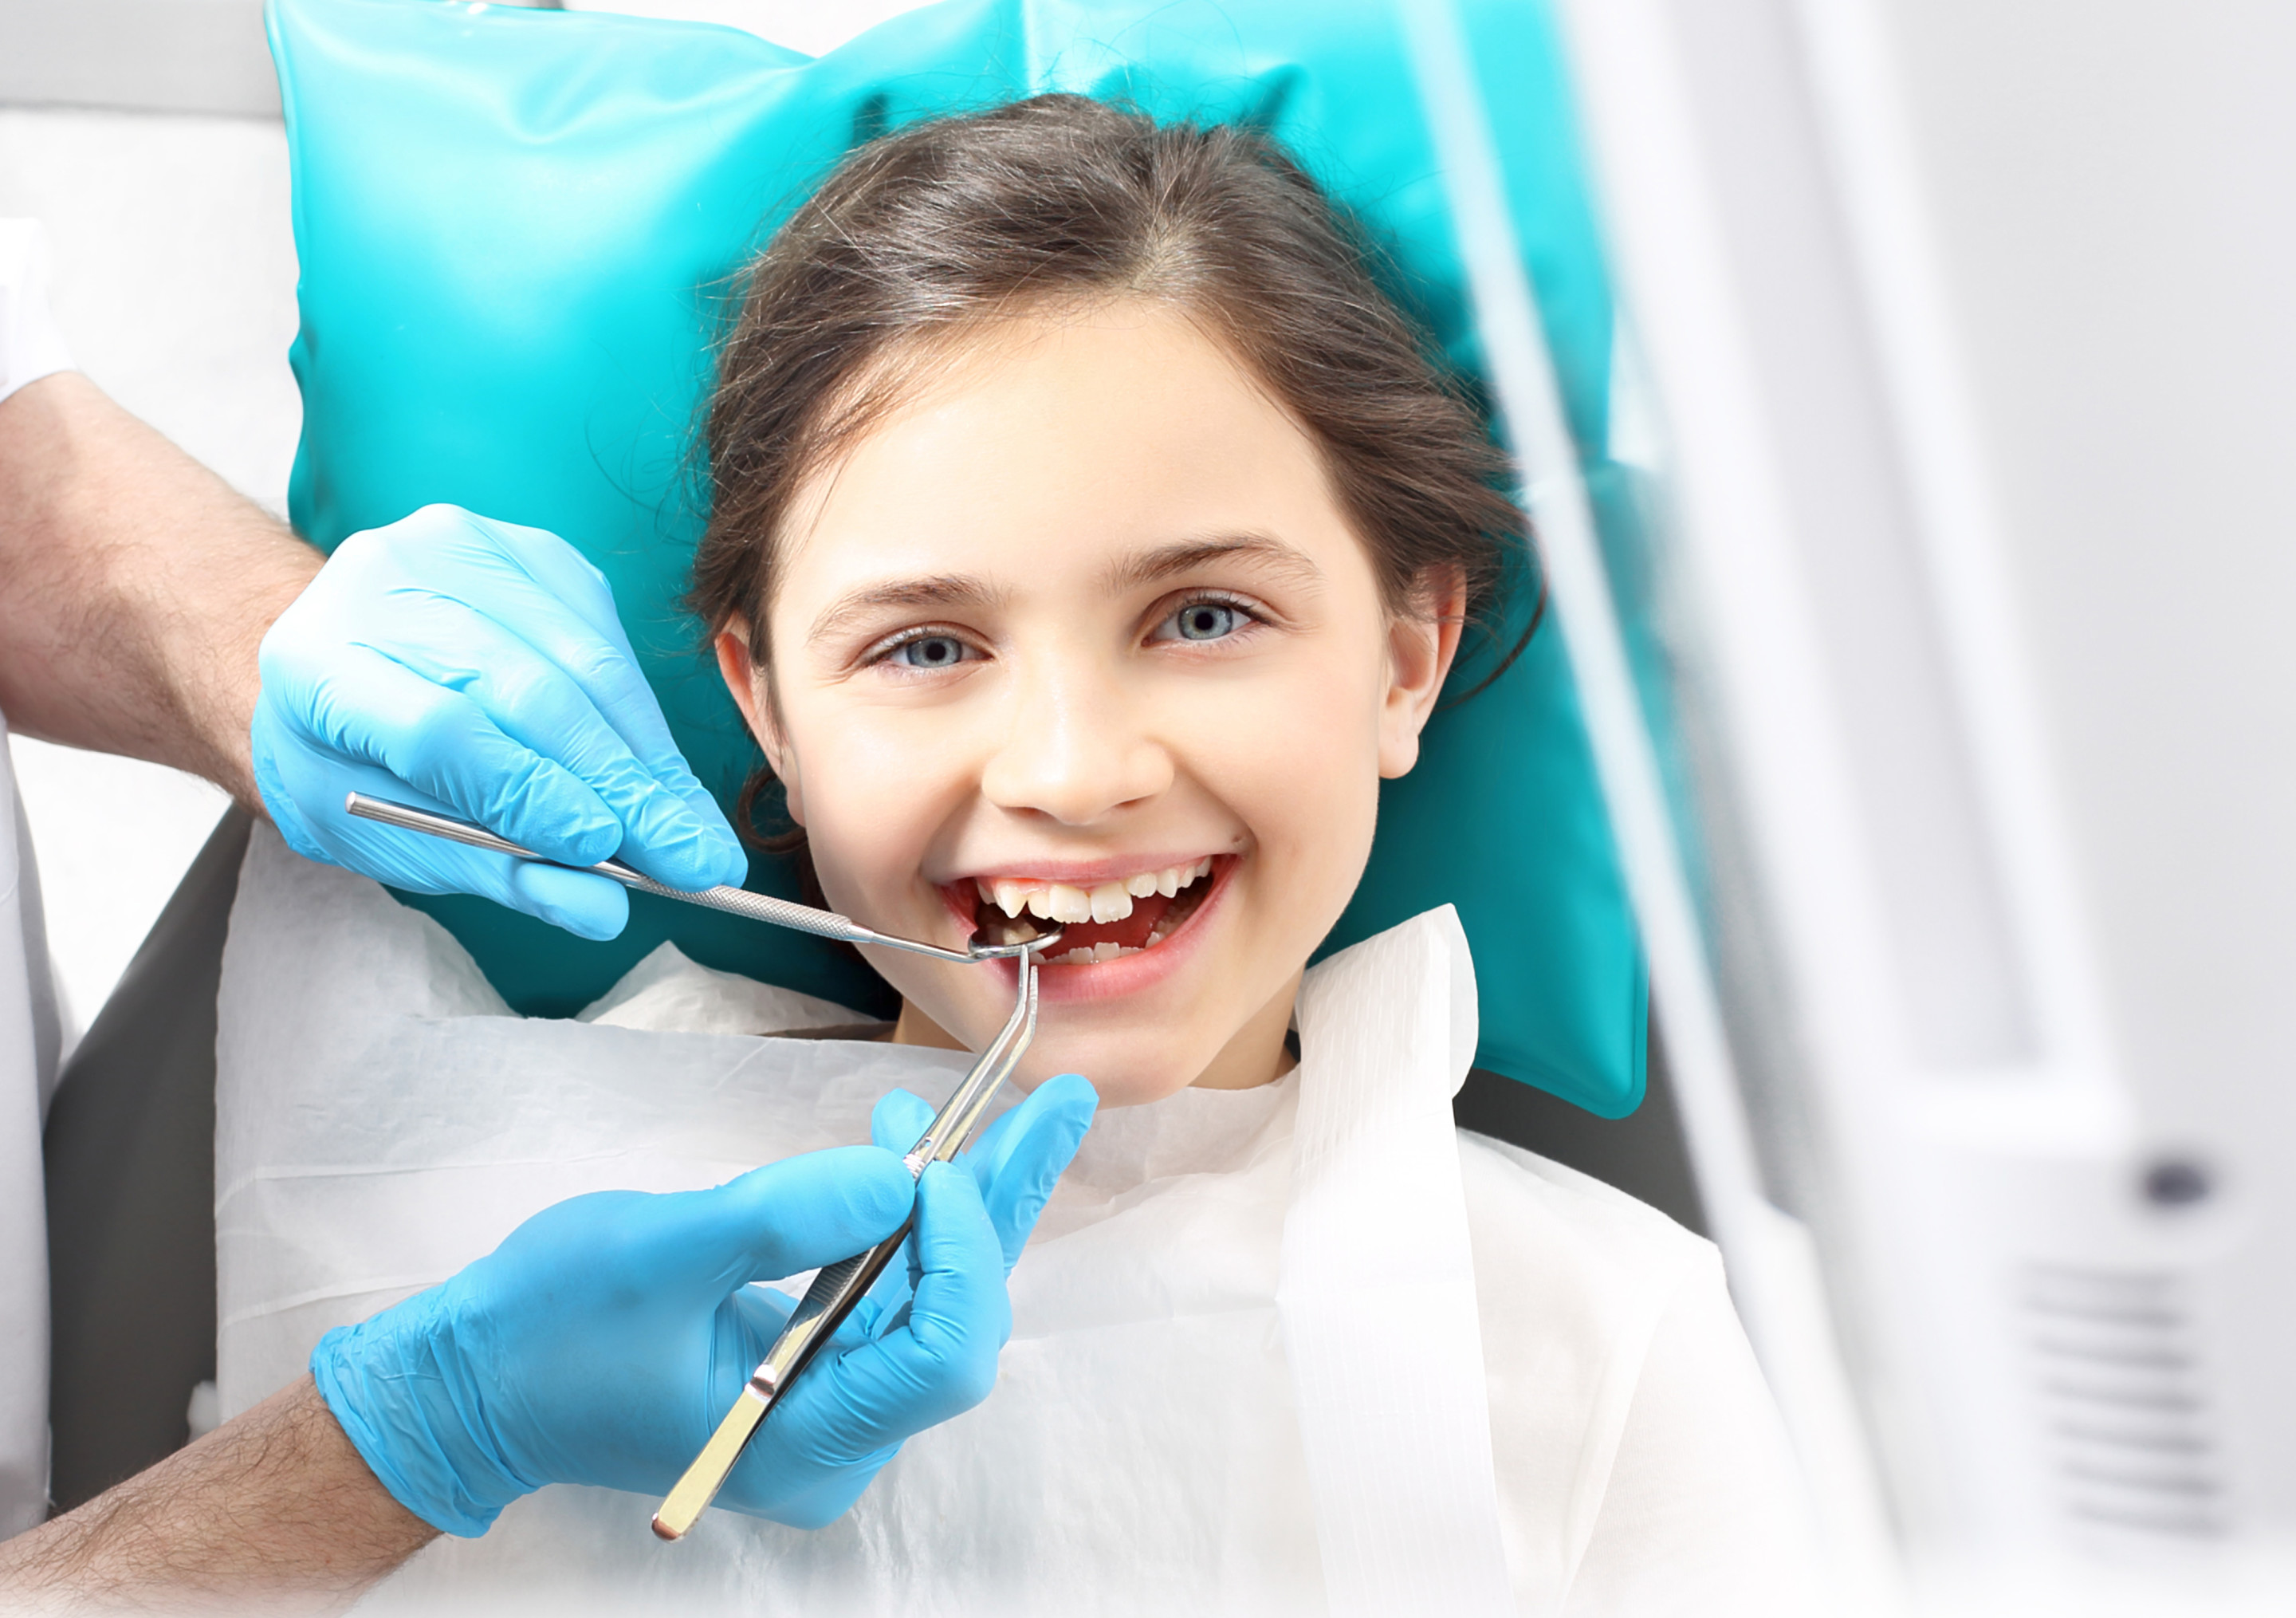 Dental benefits make your workers smile.